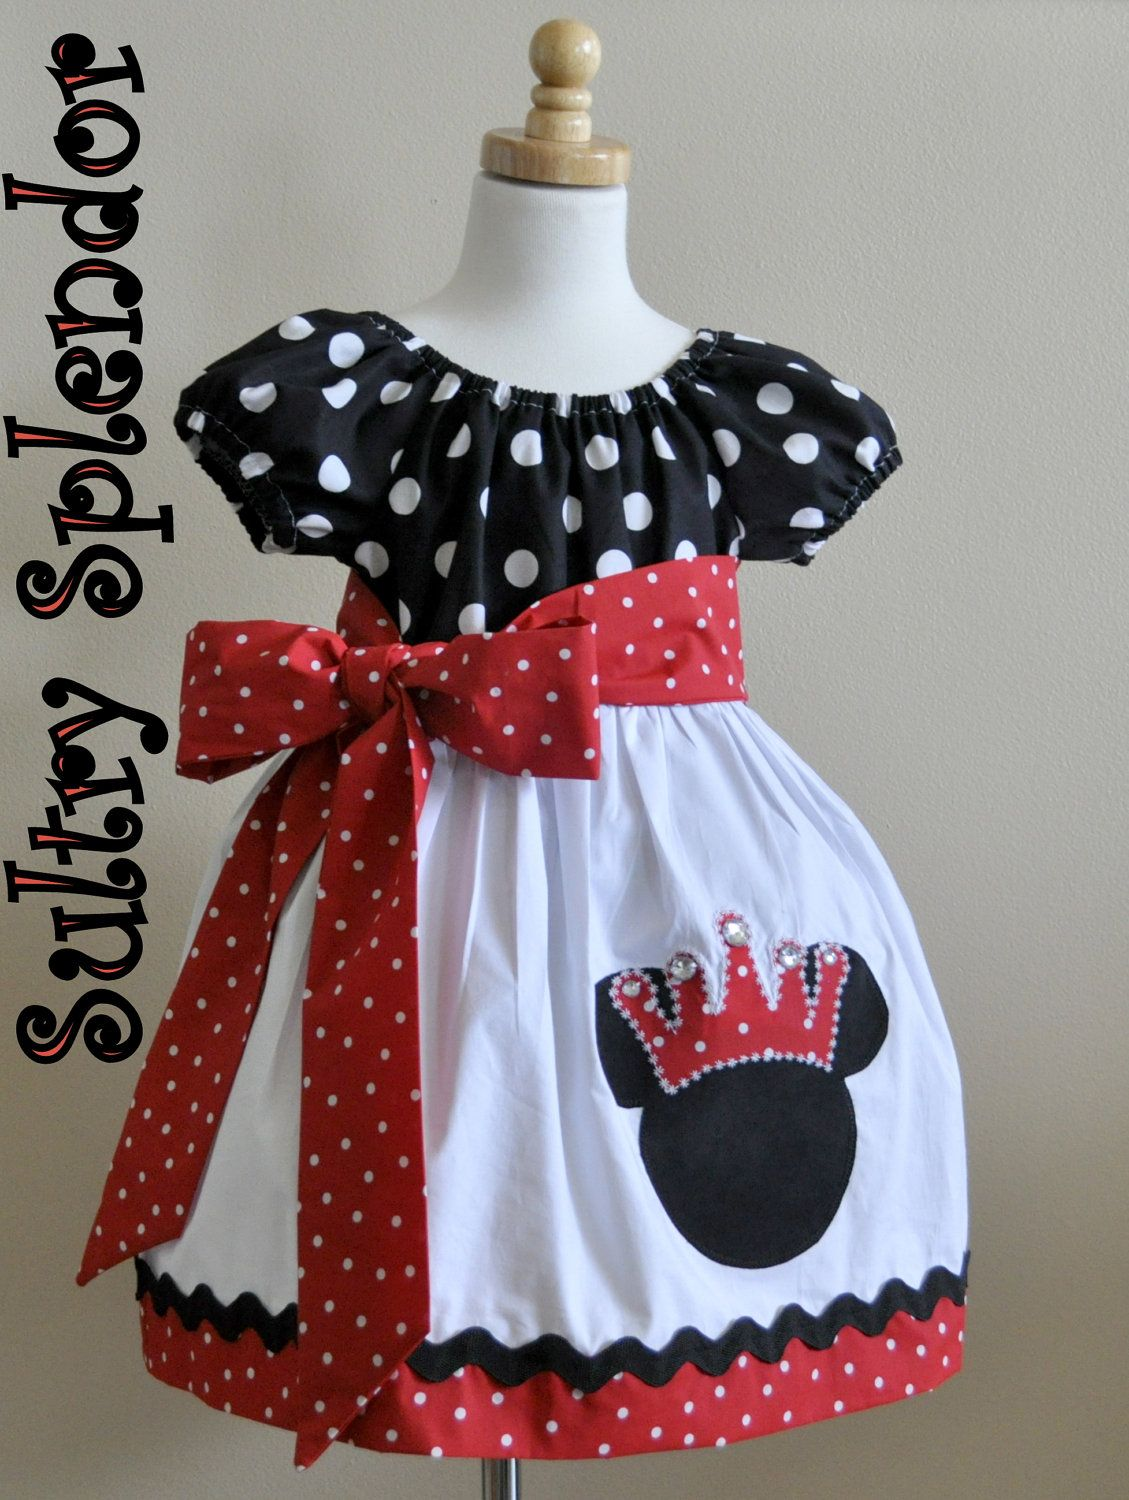 Black, White & Red Polka Dots Minnie Mouse Peasant Dress with Applique - On Sale